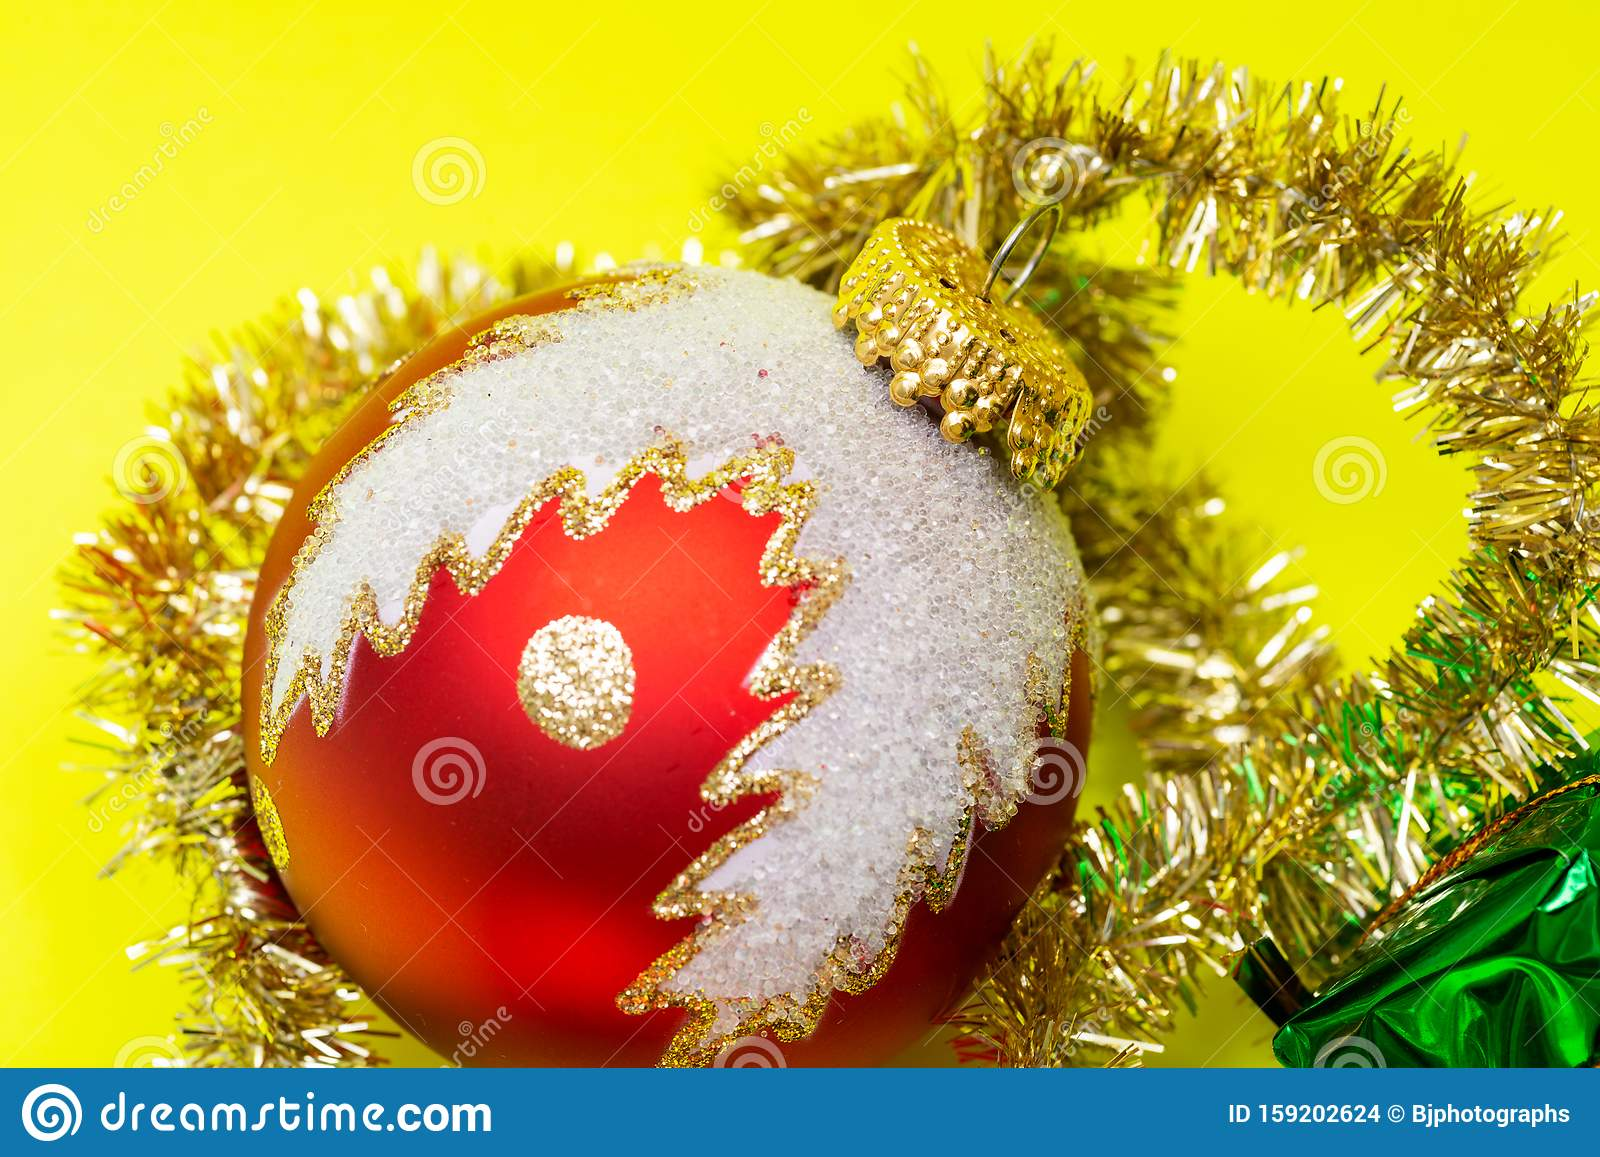 Tinsel Garland And Vintage Christmas Tree Ball Isolated On Bright Yellow Background Winter Holidays Decoration Stock Photo Image Of Celebration Festive 159202624